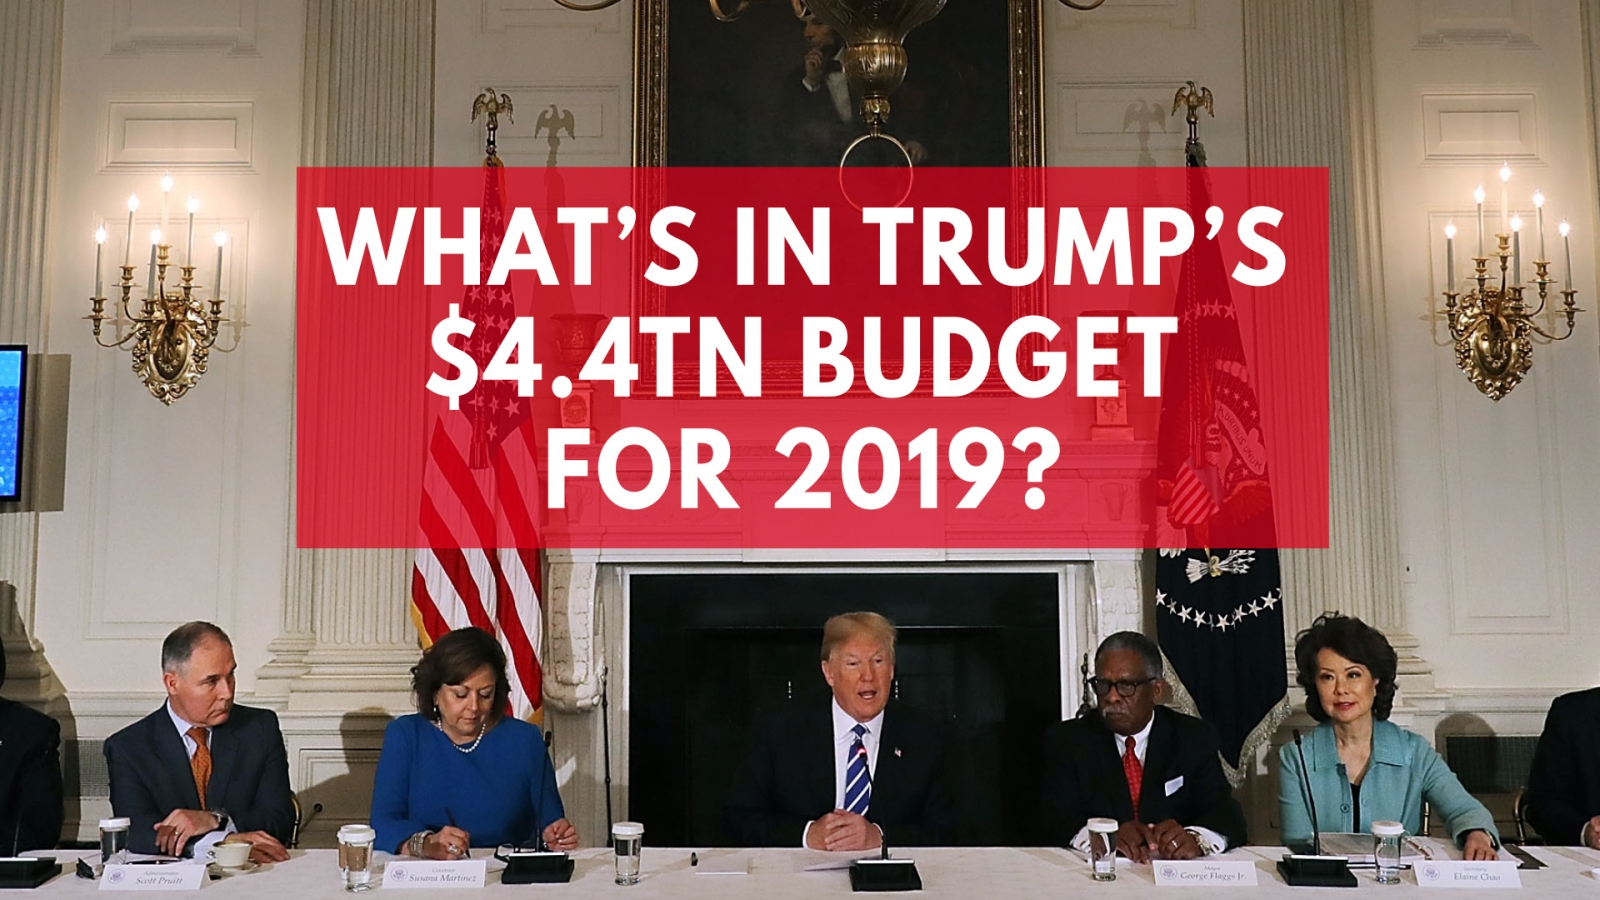 whats-in-president-trumps-4-4-trillion-budget-for-2019